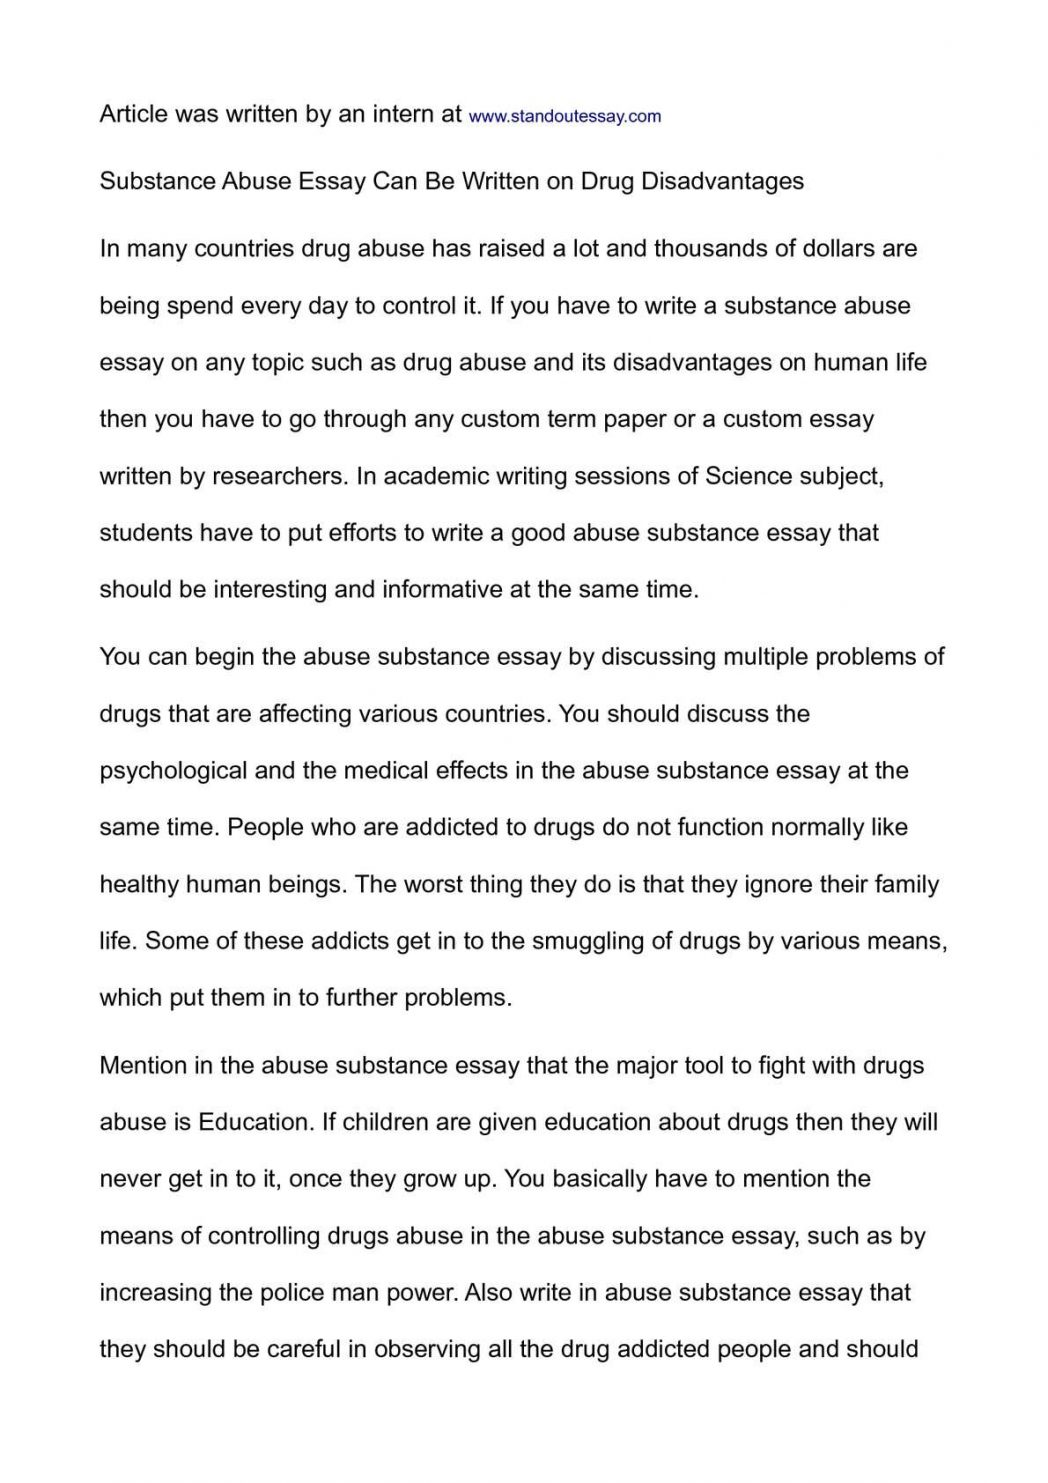 003 Essay Example National Honor Society Conclusion On Substance Abuse Junior Exampl Examples Topics 1048x1483 Archaicawful Of Drug Alcohol Full